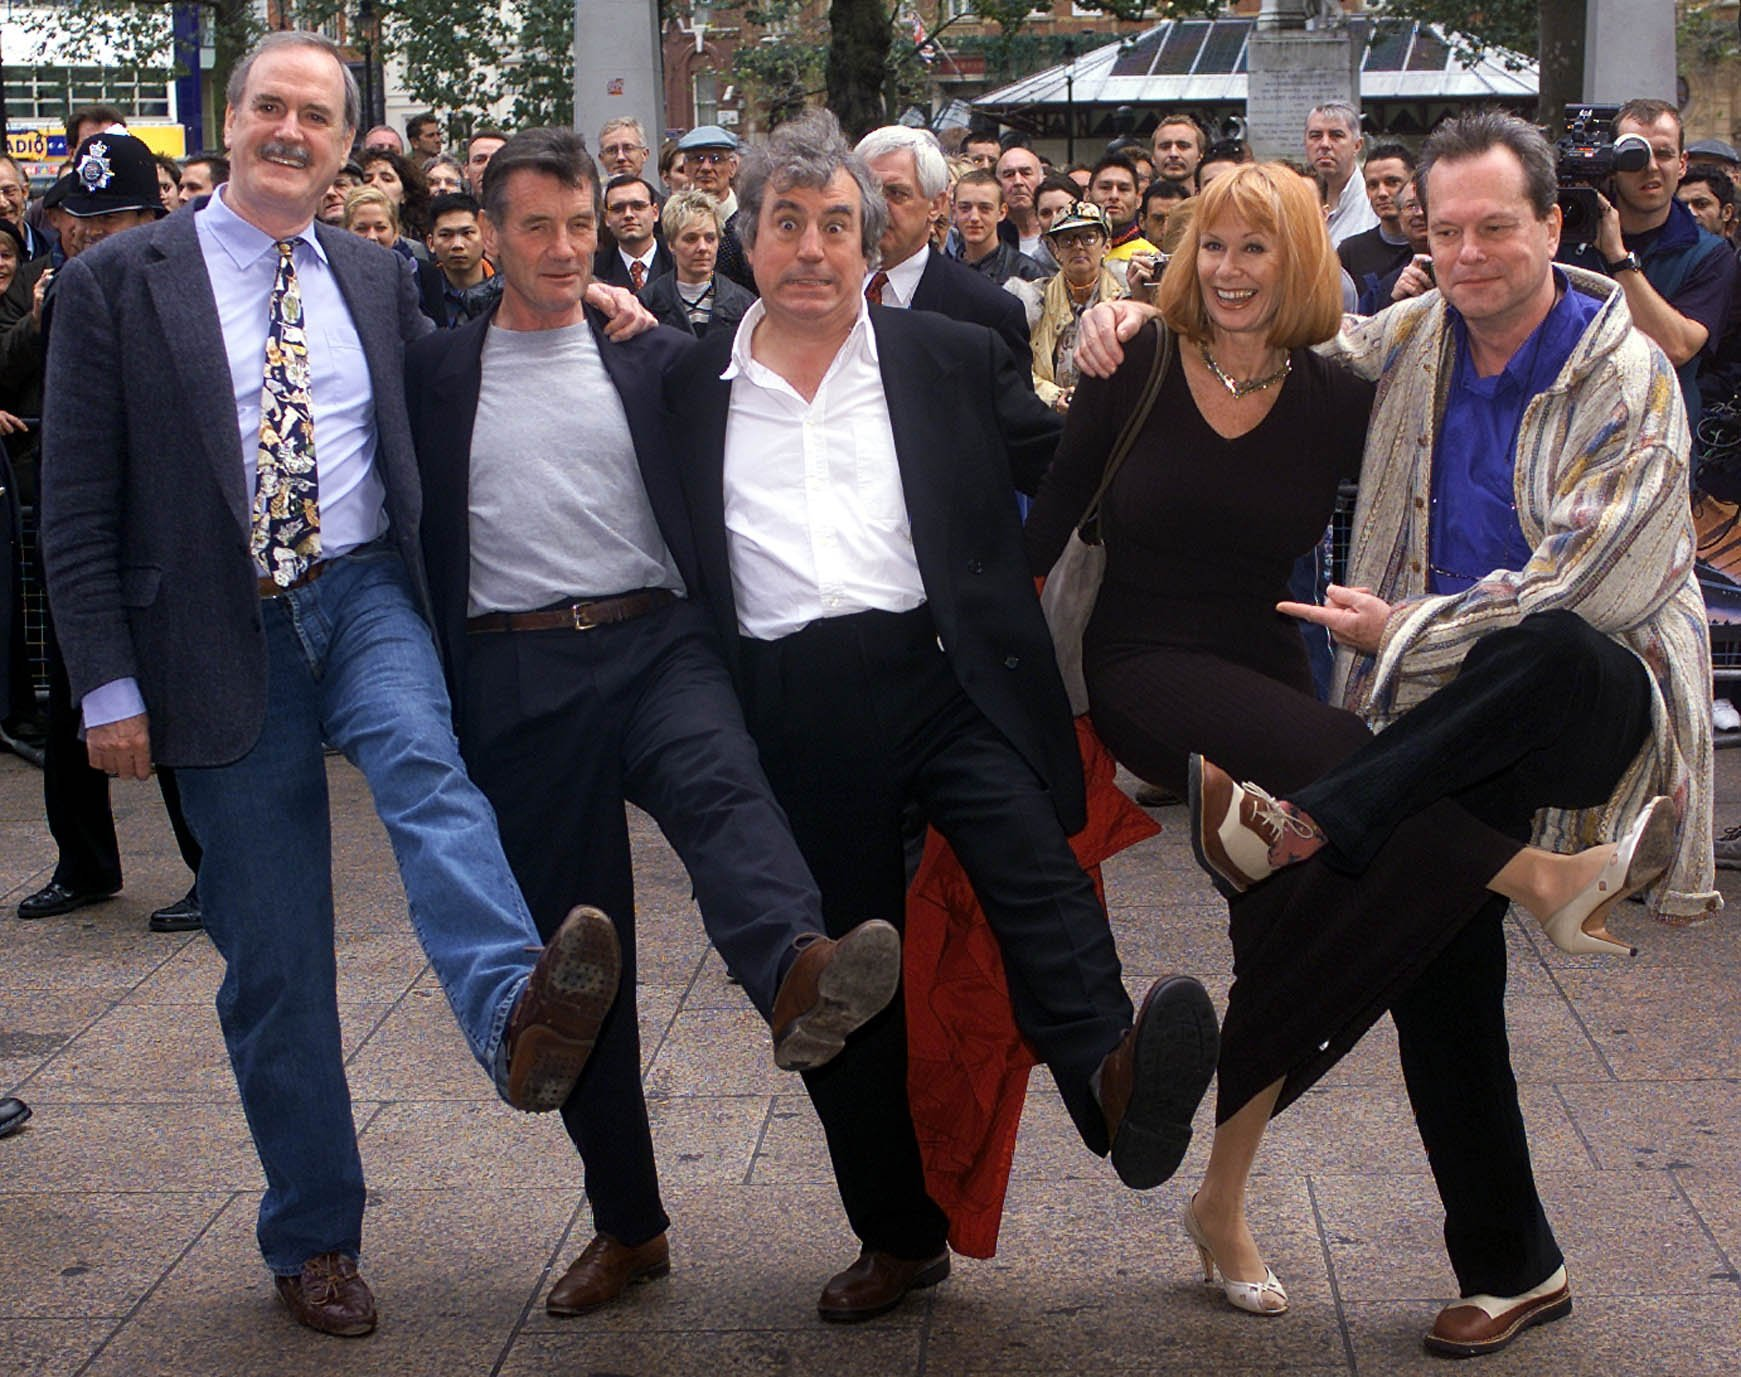 The actor made a name for himself alongside some of the members of the Monty Python comedy troupe